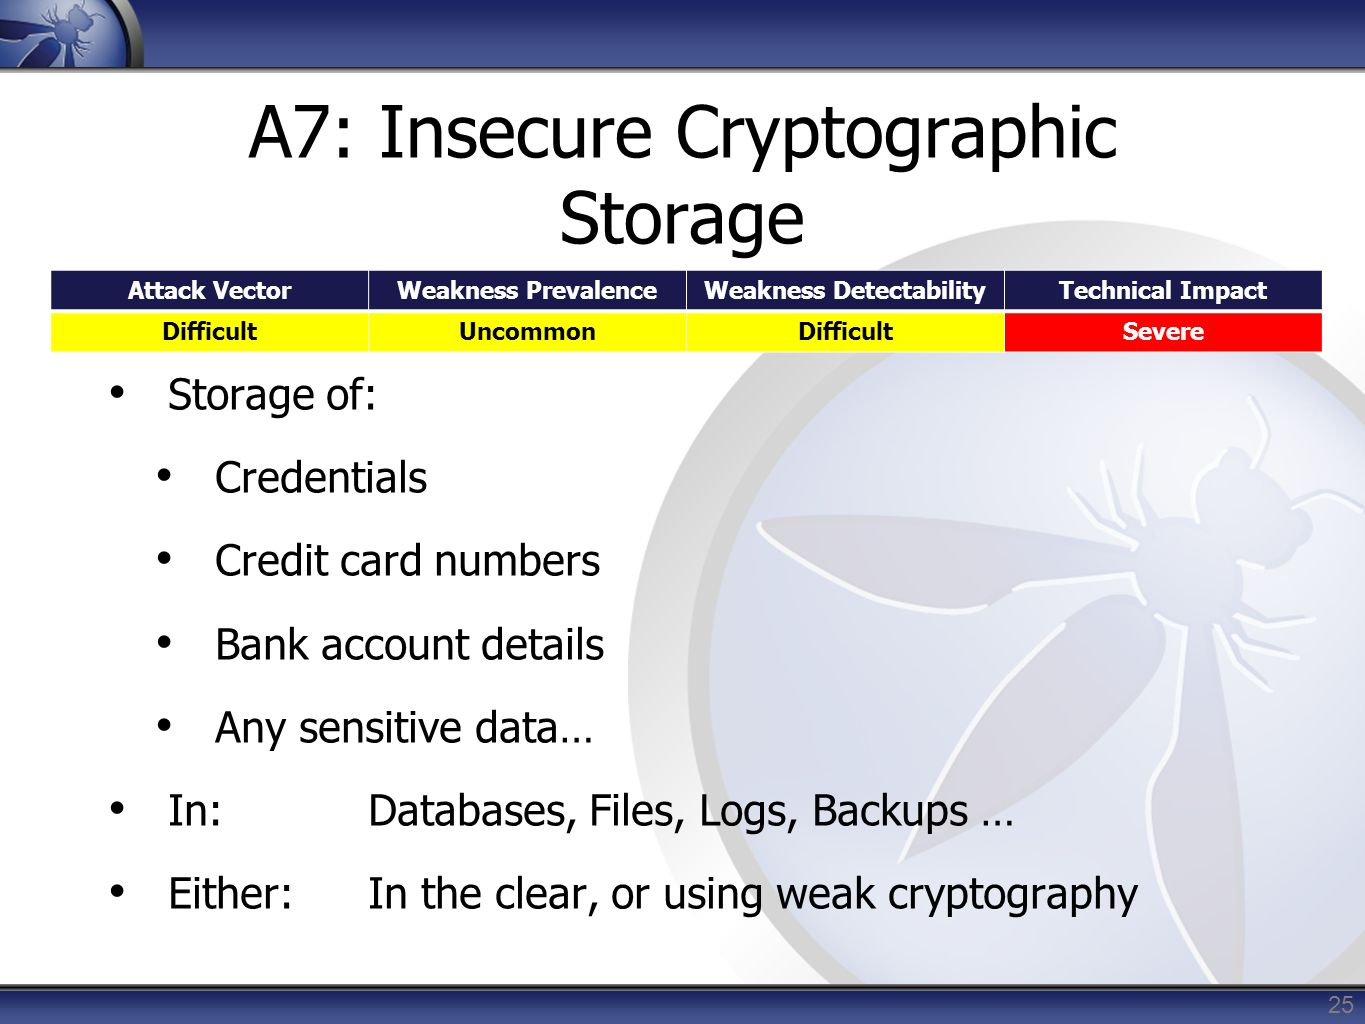 A7: Insecure Cryptographic Storage